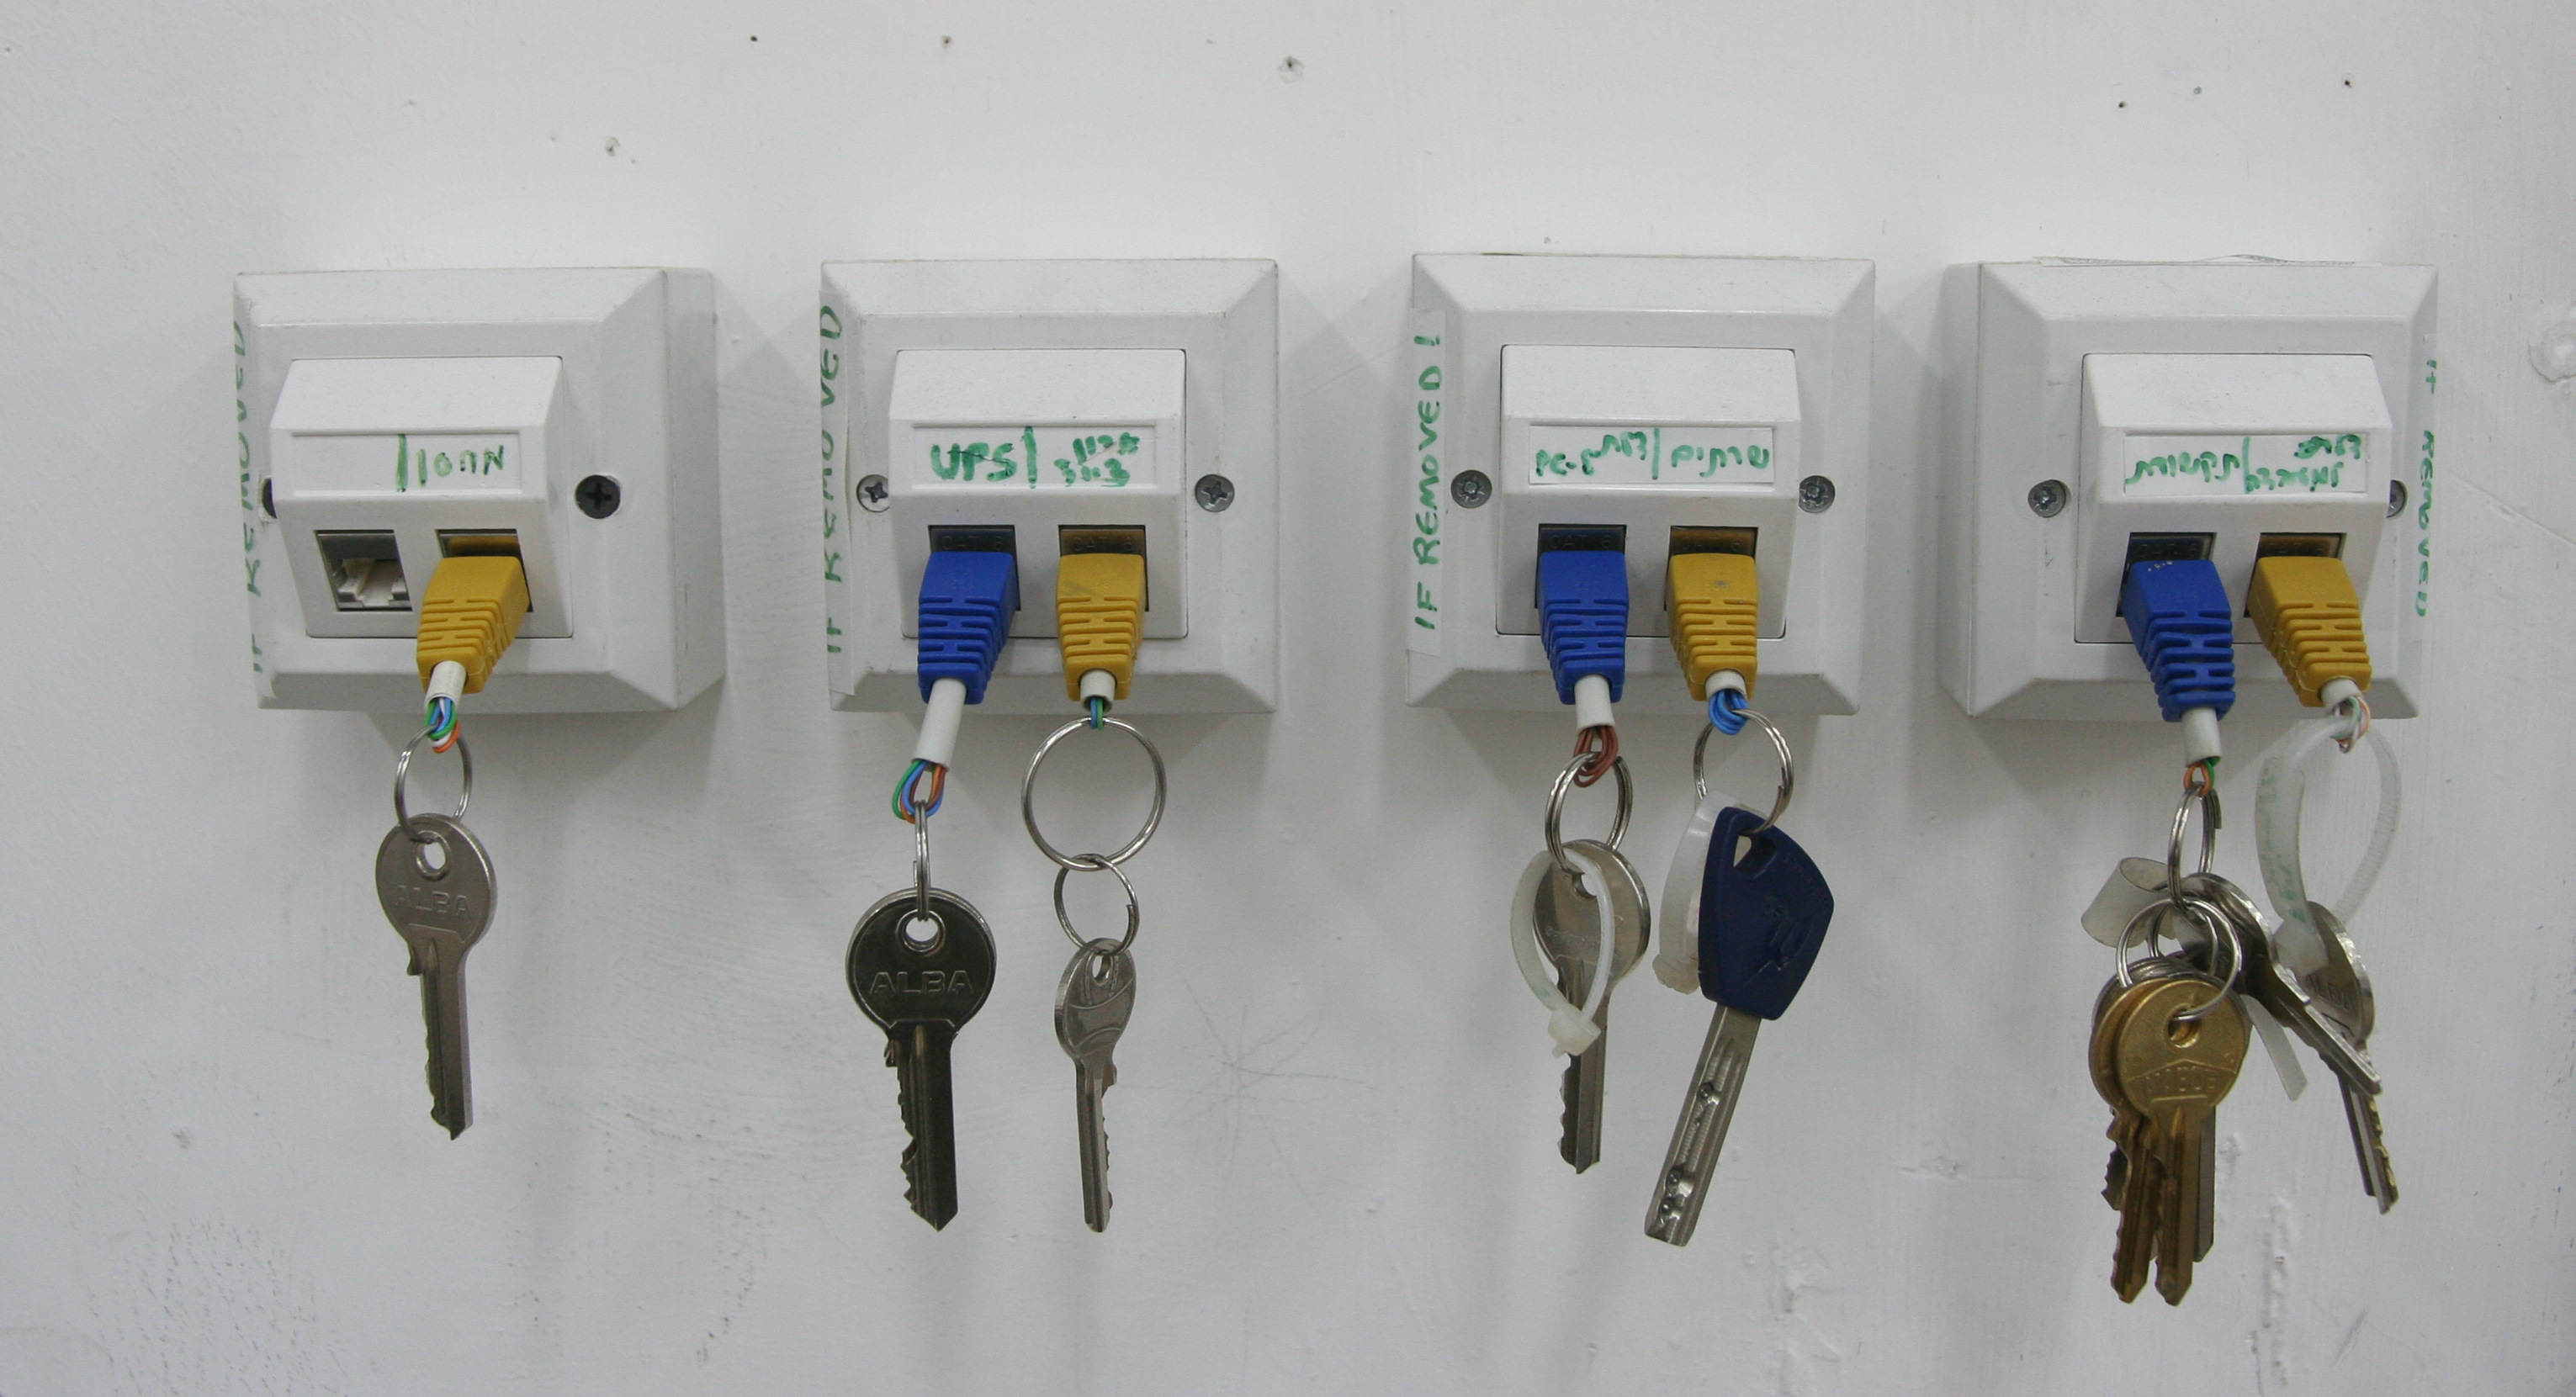 Picture of RJ-45 Key Chain and Rack